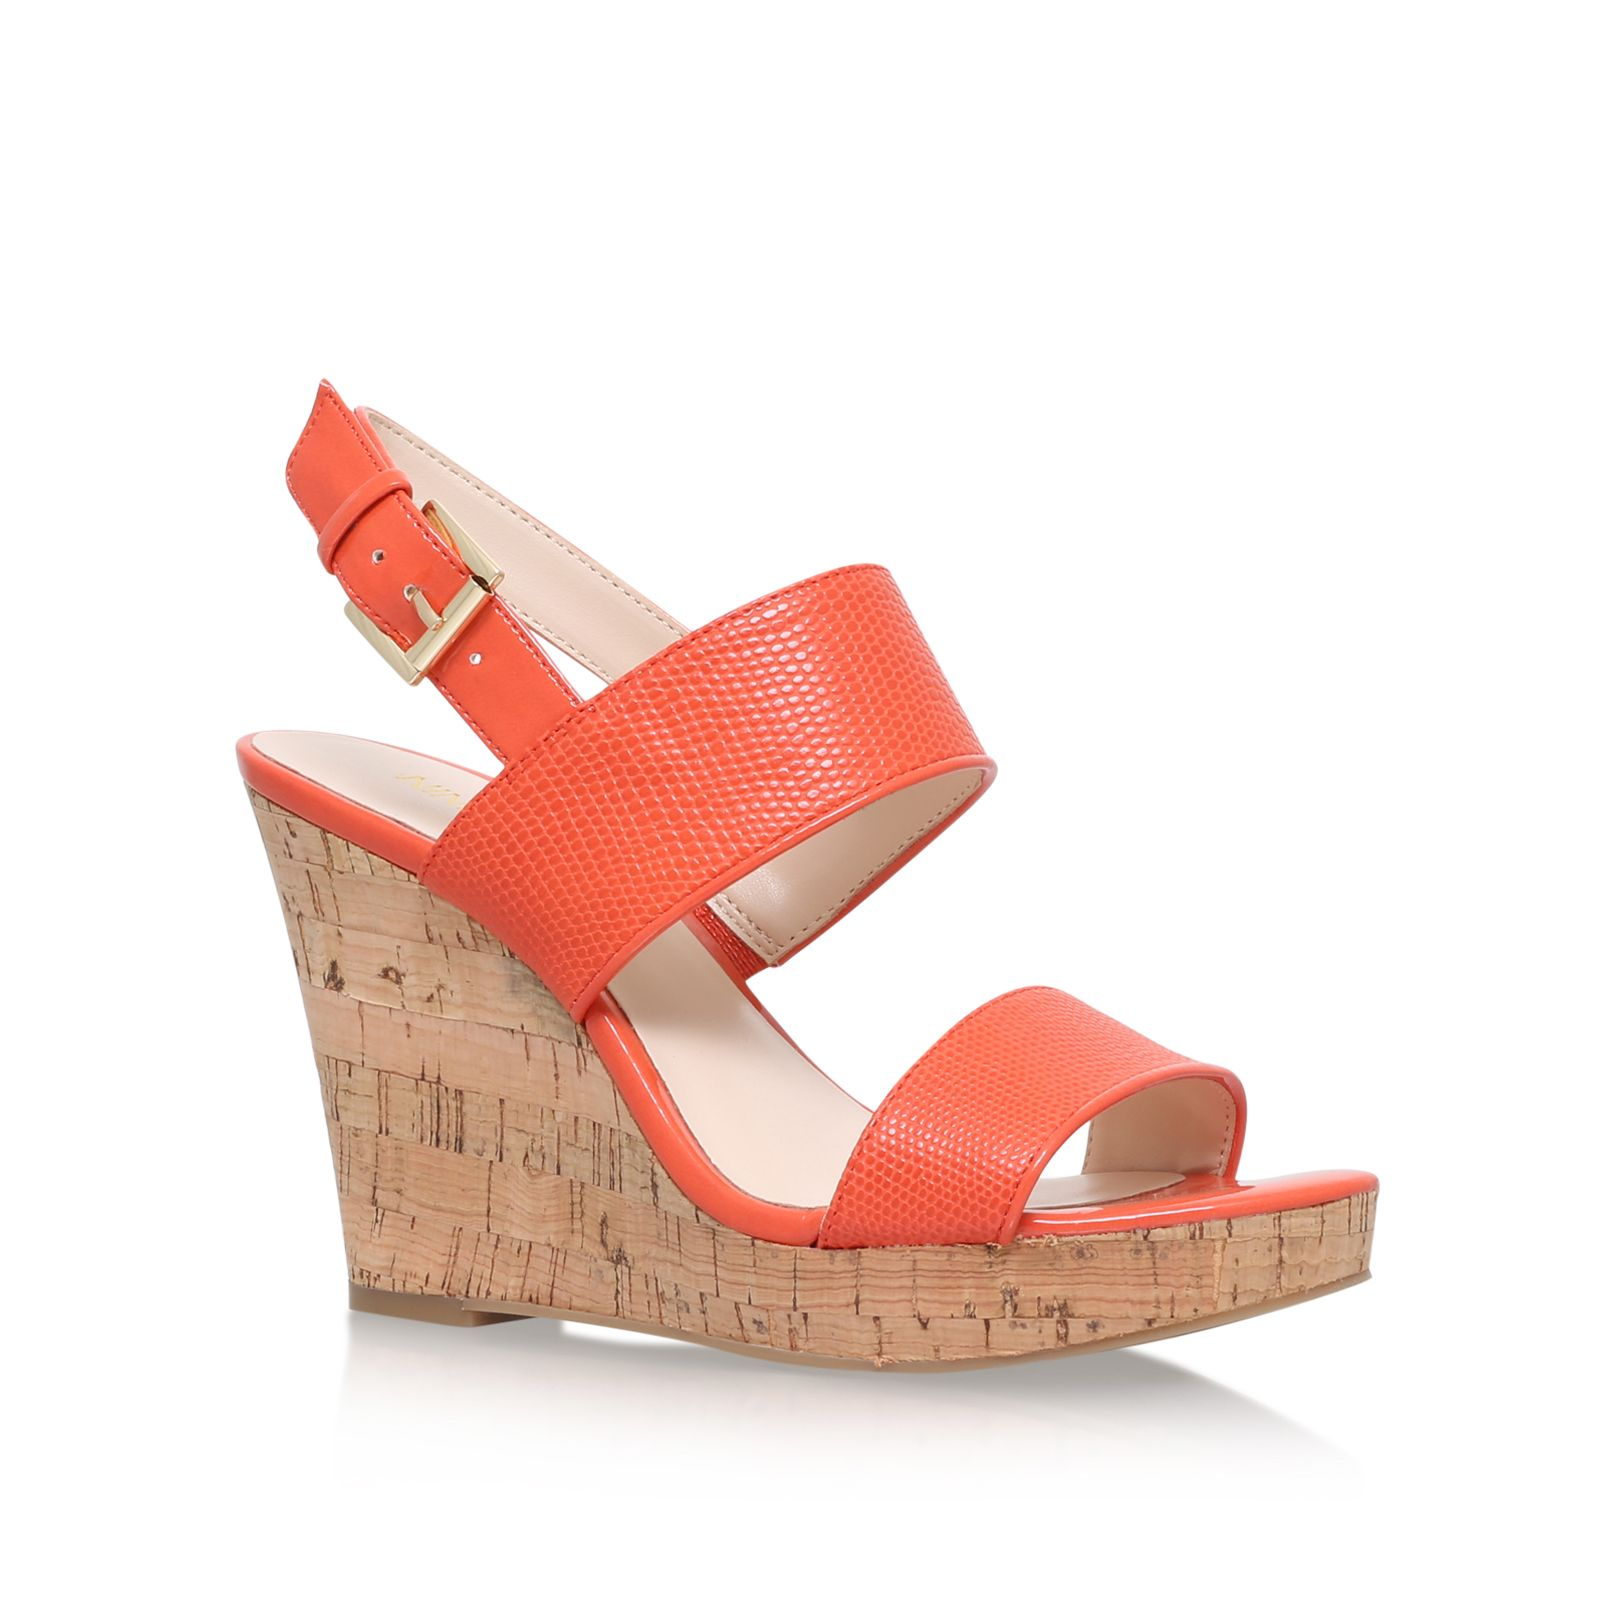 Looking for Red Wedges to dress up your outfit? Shop for Women's Red Wedges and Juniors Red Wedges at Macy's.